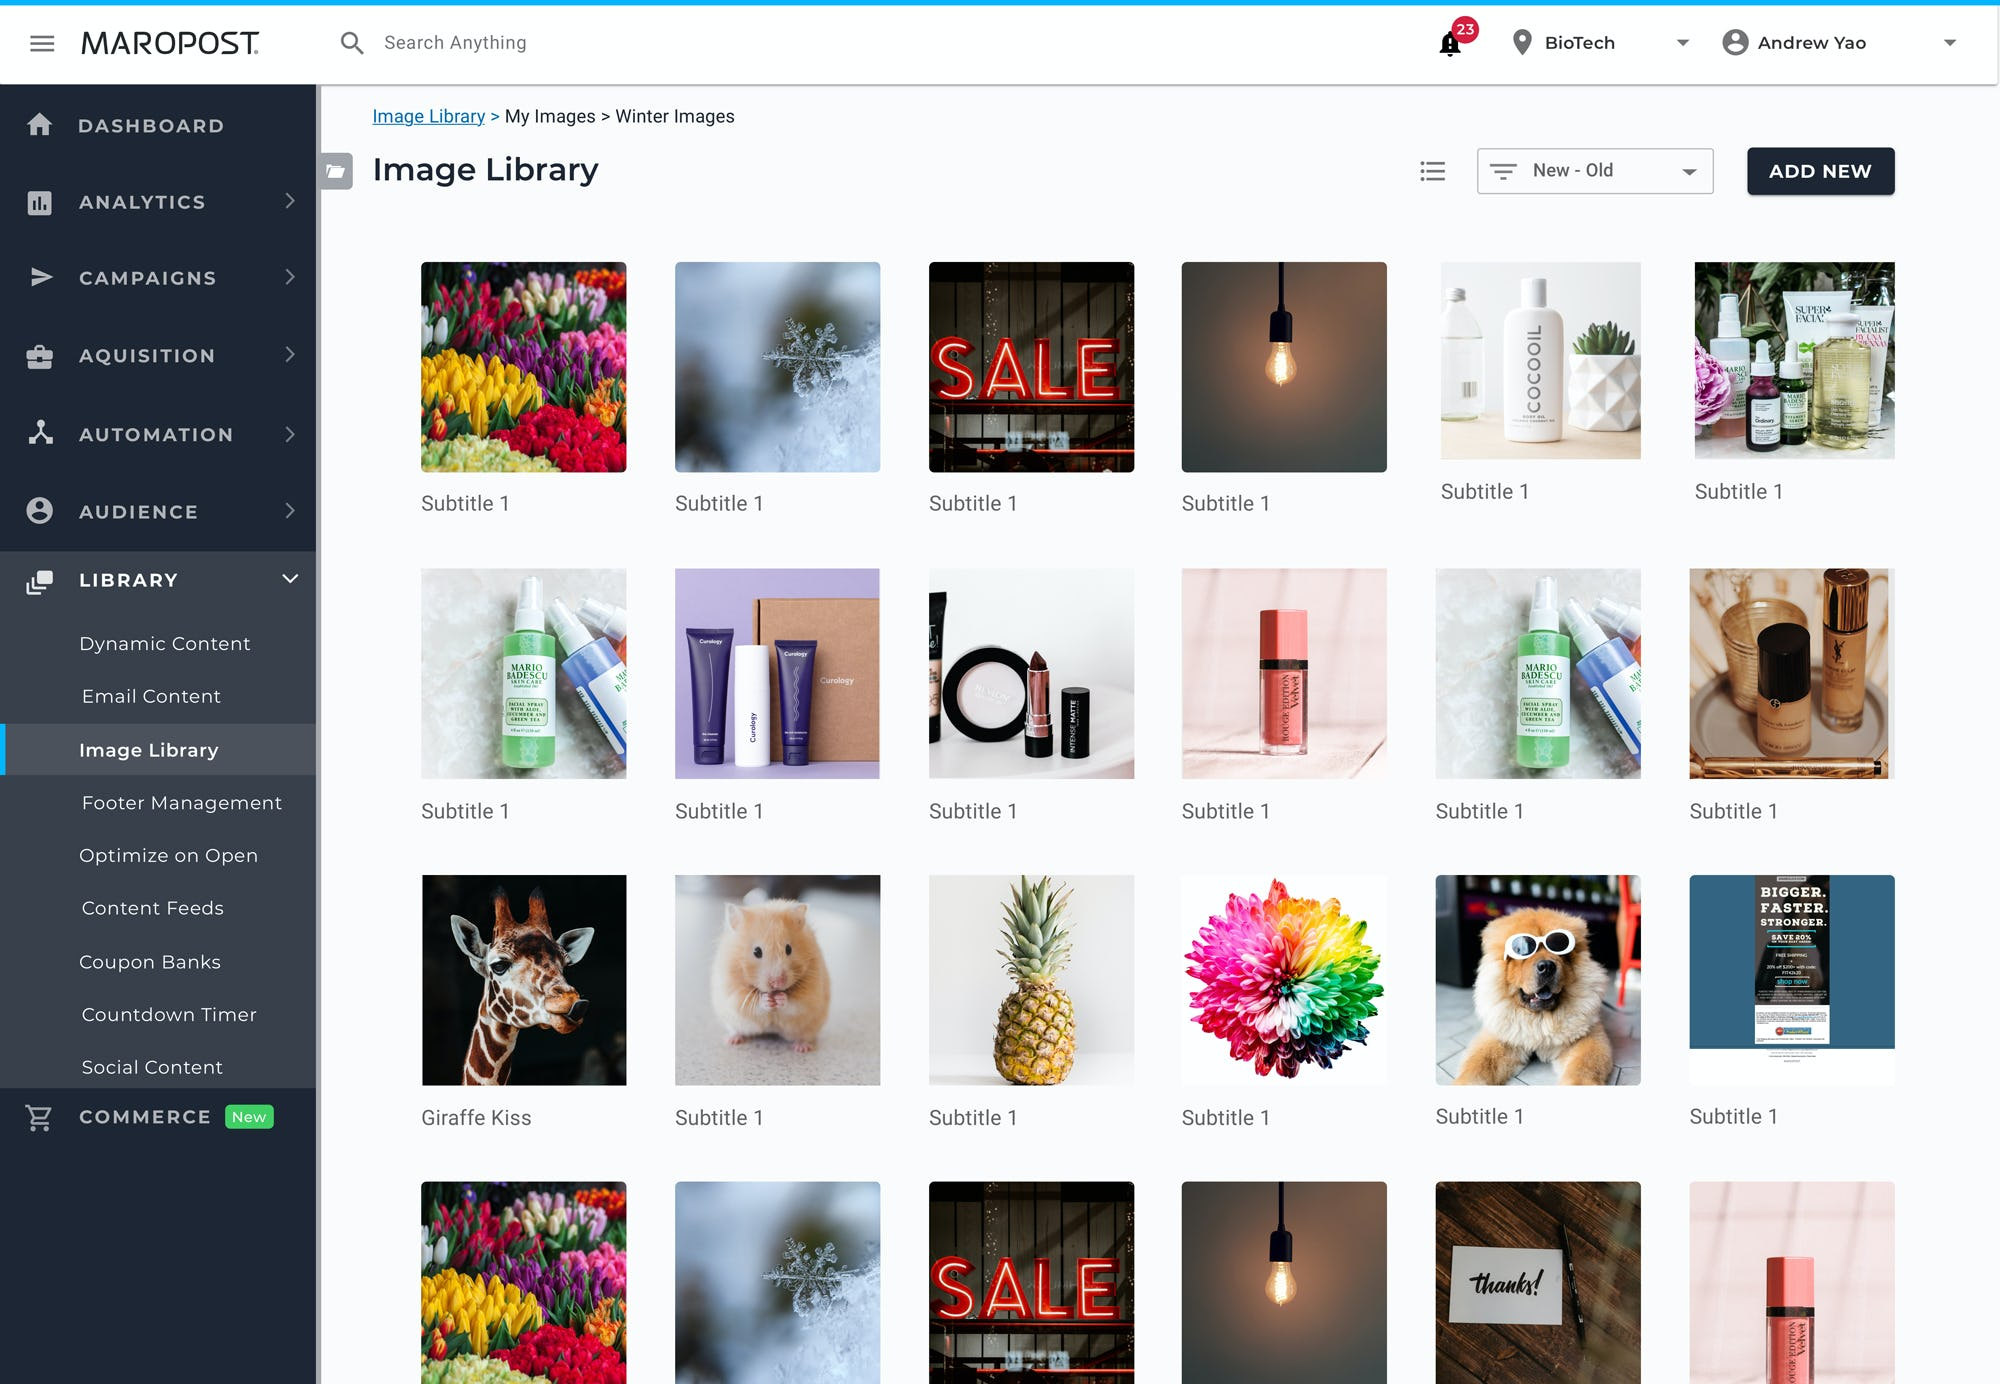 Maropost Software - Image Library